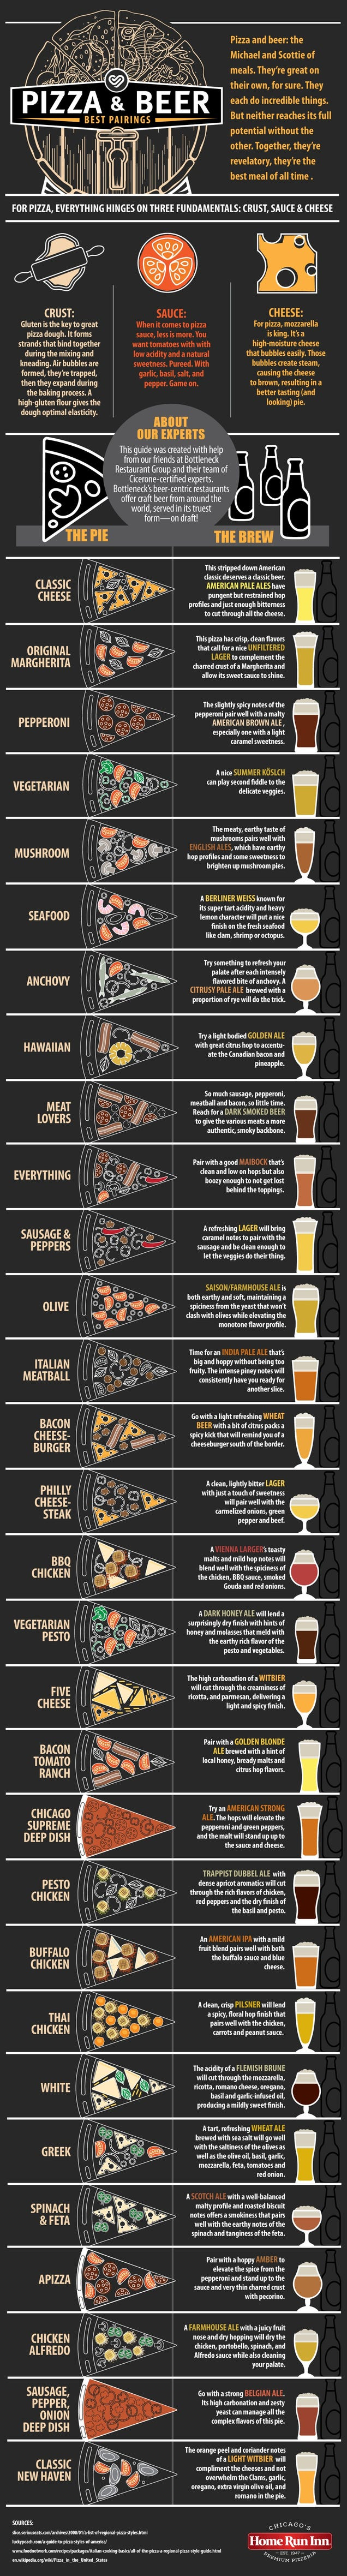 Find the Perfect Beer Pairing for Your Pizza With This Visual Guide